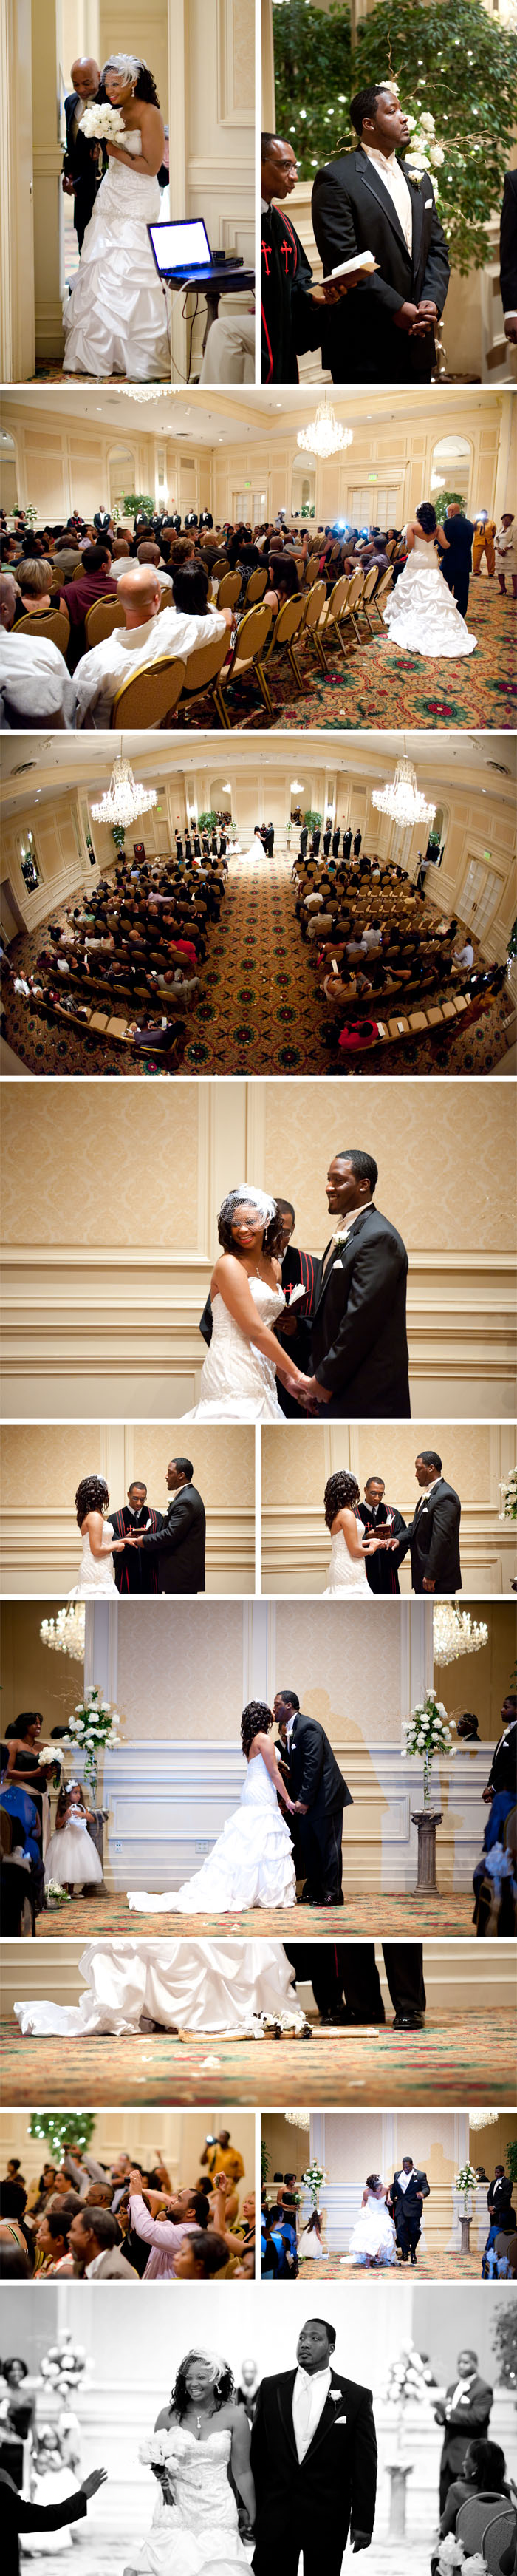 ceremony Kara + Stephen | Greensboro, NC Wedding